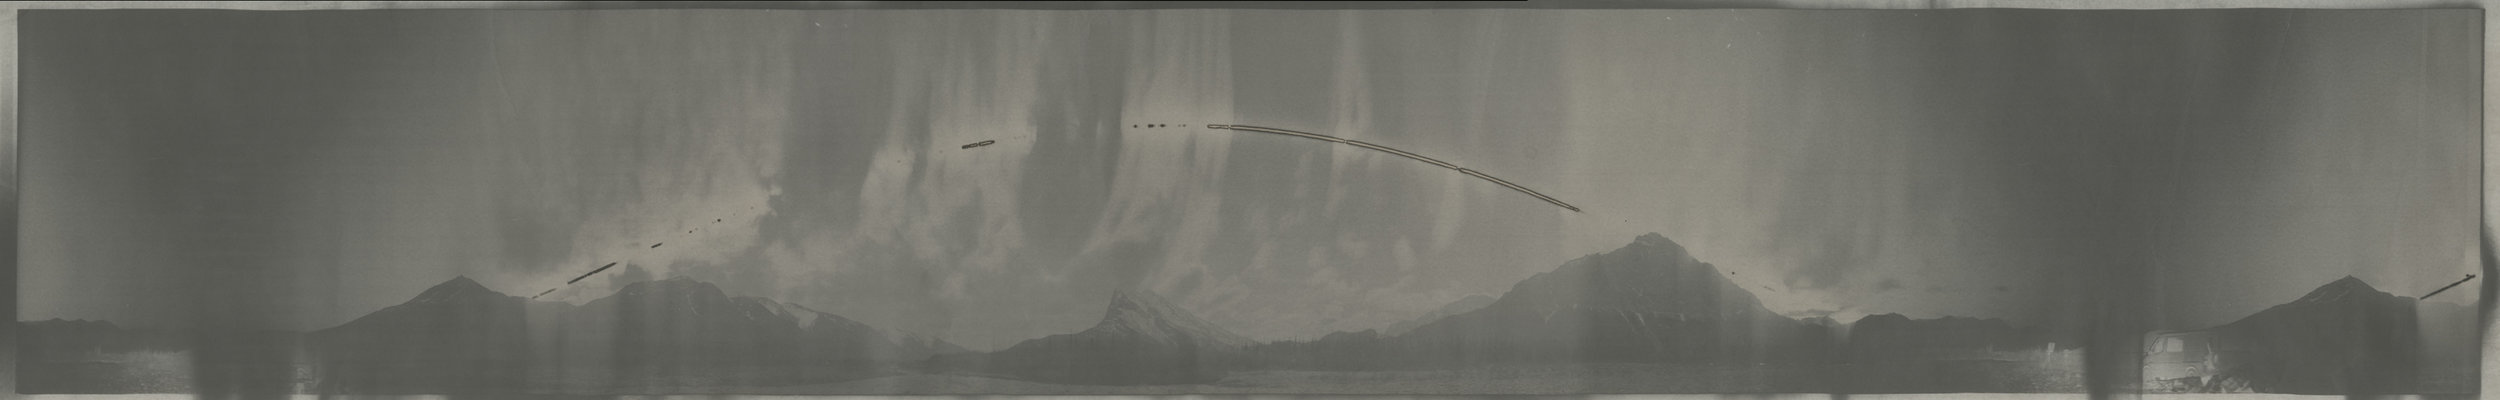 "Cirkut #3 (Dietrich River, Alaska, within the arctic Circle, 29 hours), 2015. 8""x 49.5"". Unique silver based paper negative. Courtesy of Haines Gallery, San Francisco"